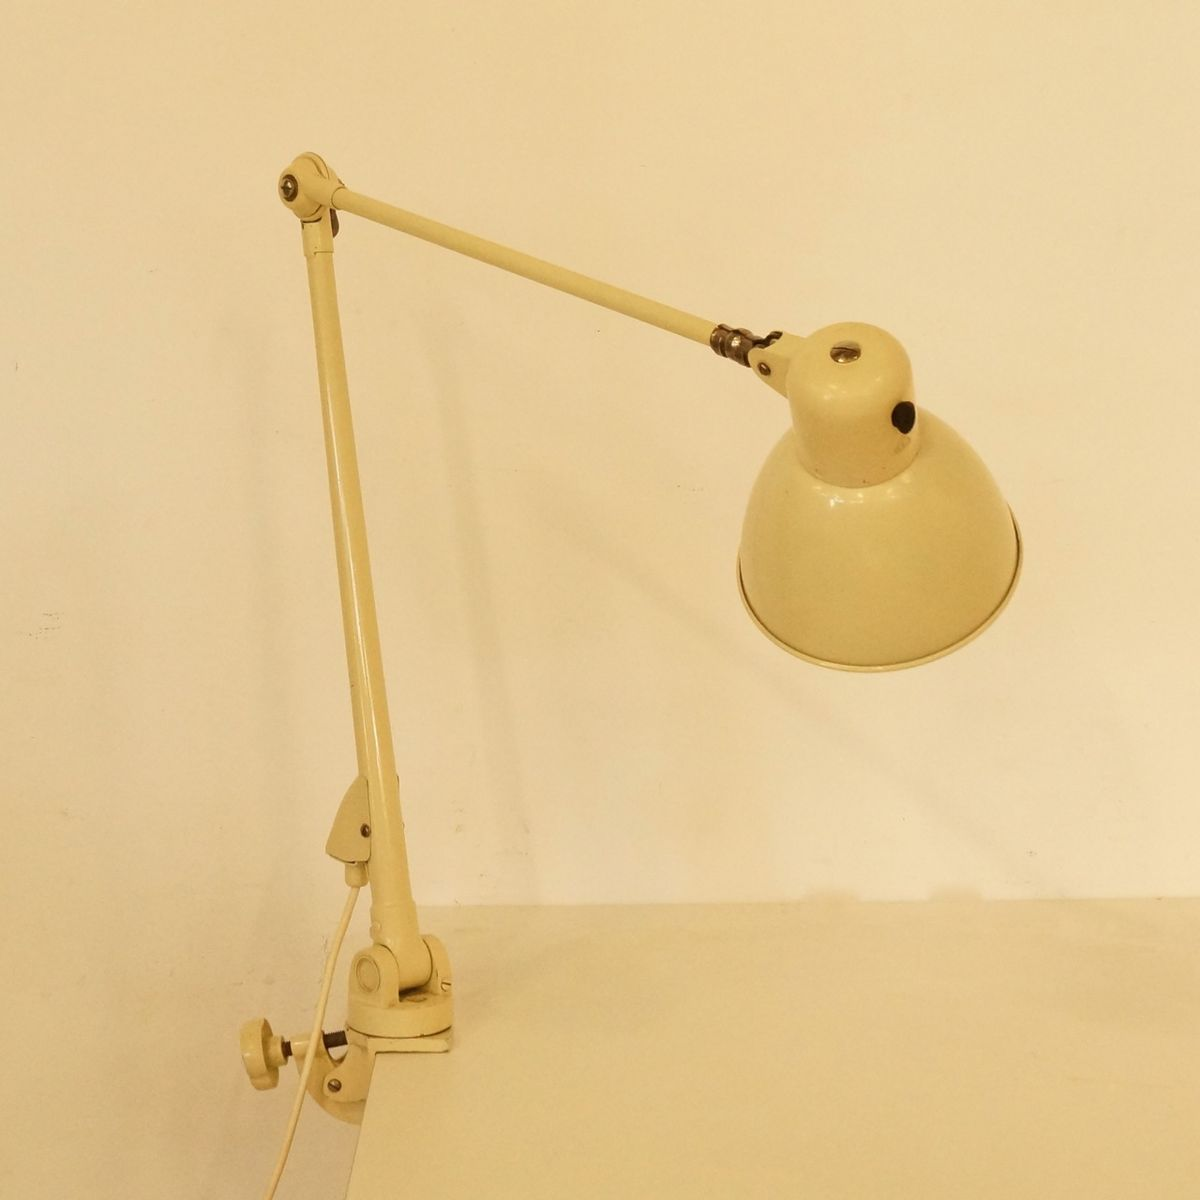 Architect 39 S Lamp From S I S 1950s For Sale At Pamono